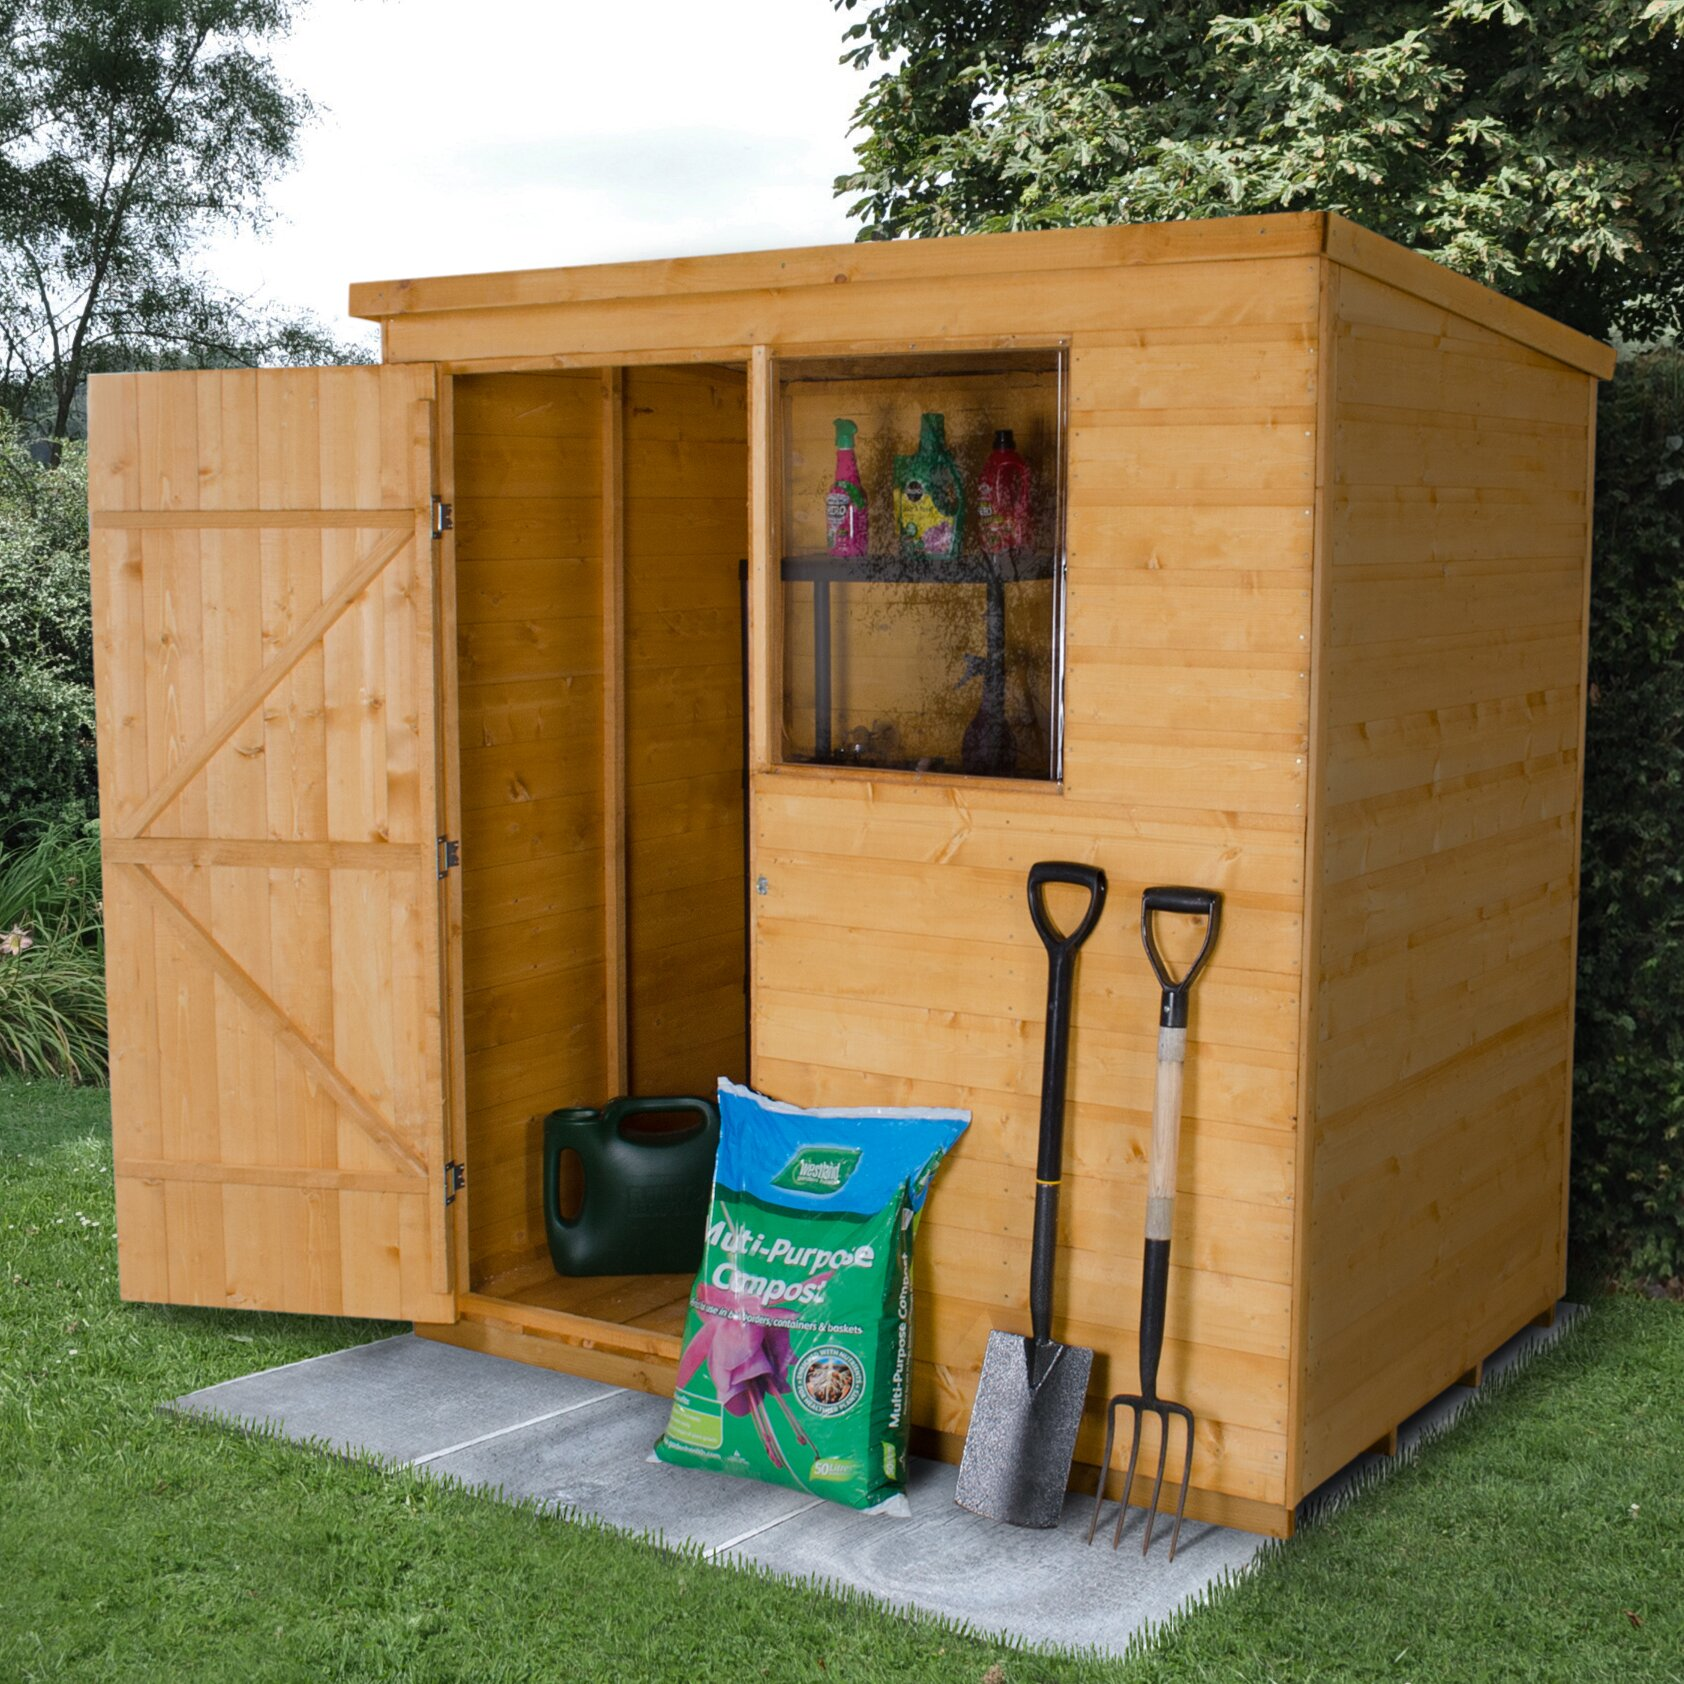 forest garden 4 ft w x 6 ft d wooden storage shed. Black Bedroom Furniture Sets. Home Design Ideas